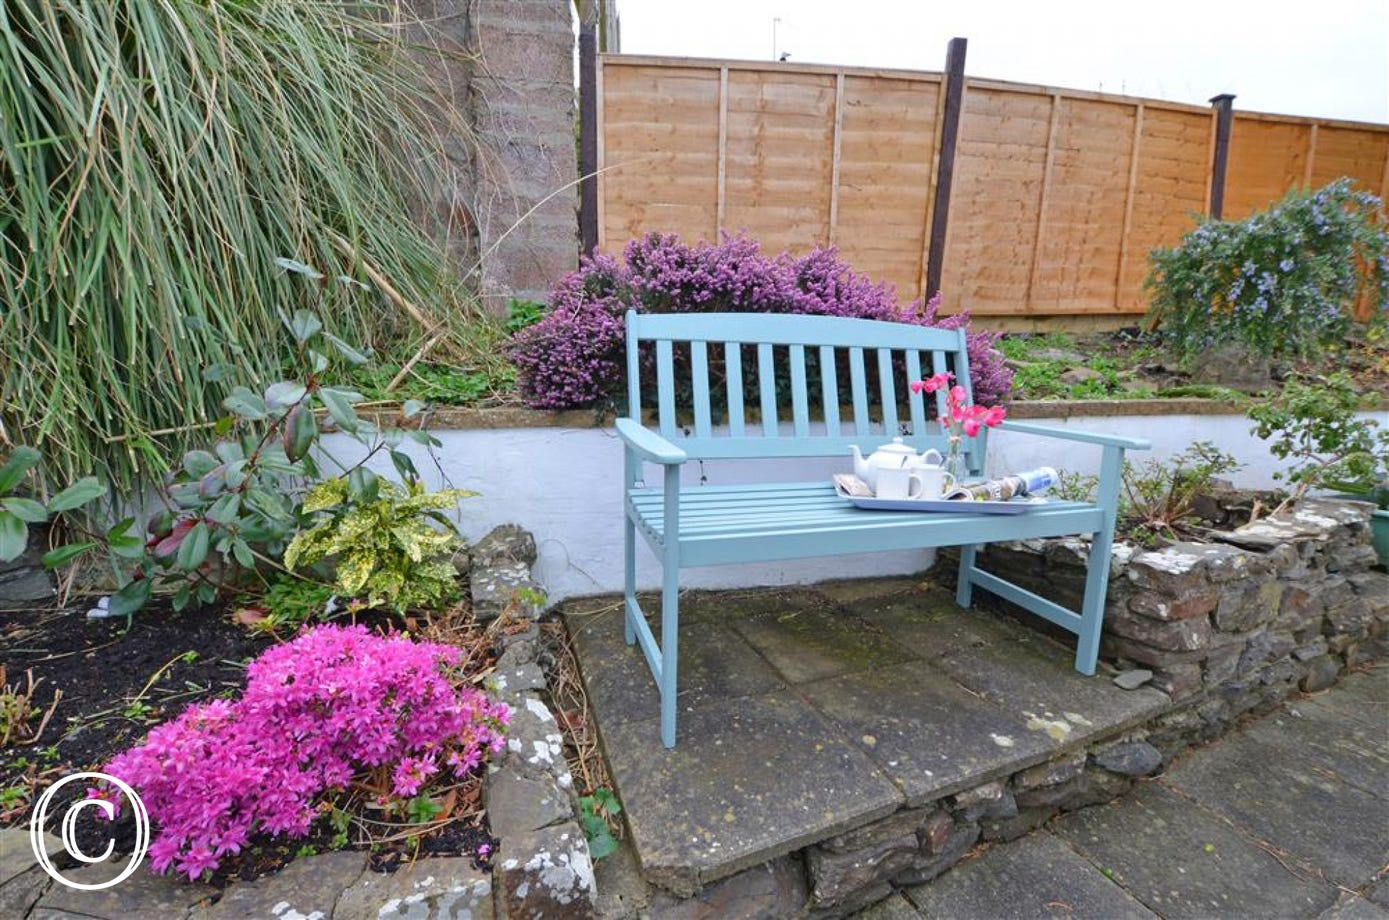 A quiet spot in the garden, ideal for reading the morning newspaper or a good book